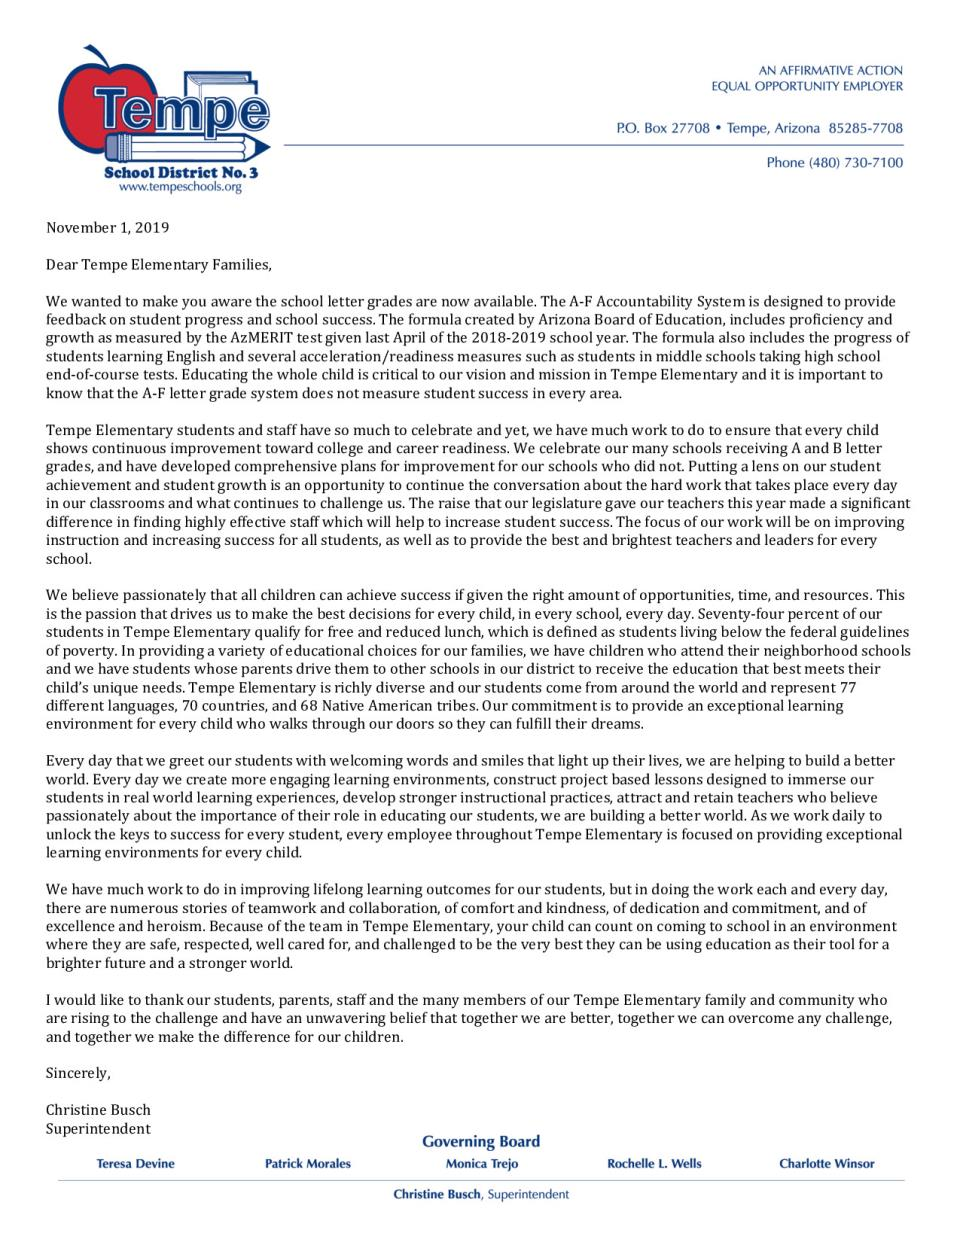 Letter from Superintendent about School Letter Grades -2018-2019 - English